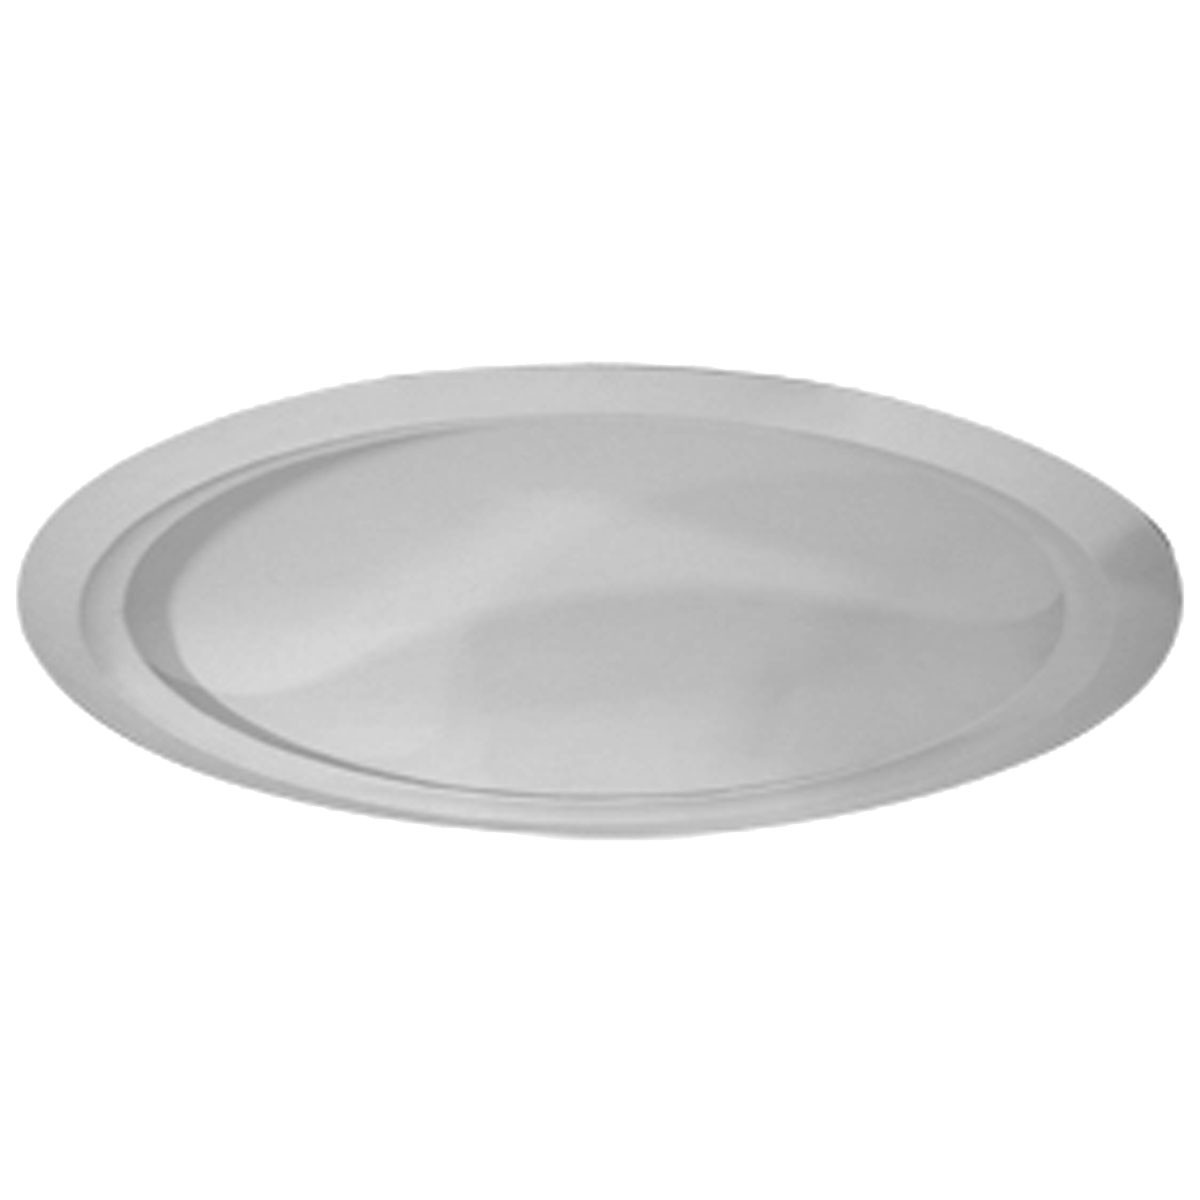 "EM-DOME62AR - 63 5/8""OD x 59 1/2""ID 13 3/8""D Artisan Ceiling Dome with Light Ring (62""Diameter x 13 3/8""D Rough Opening)"